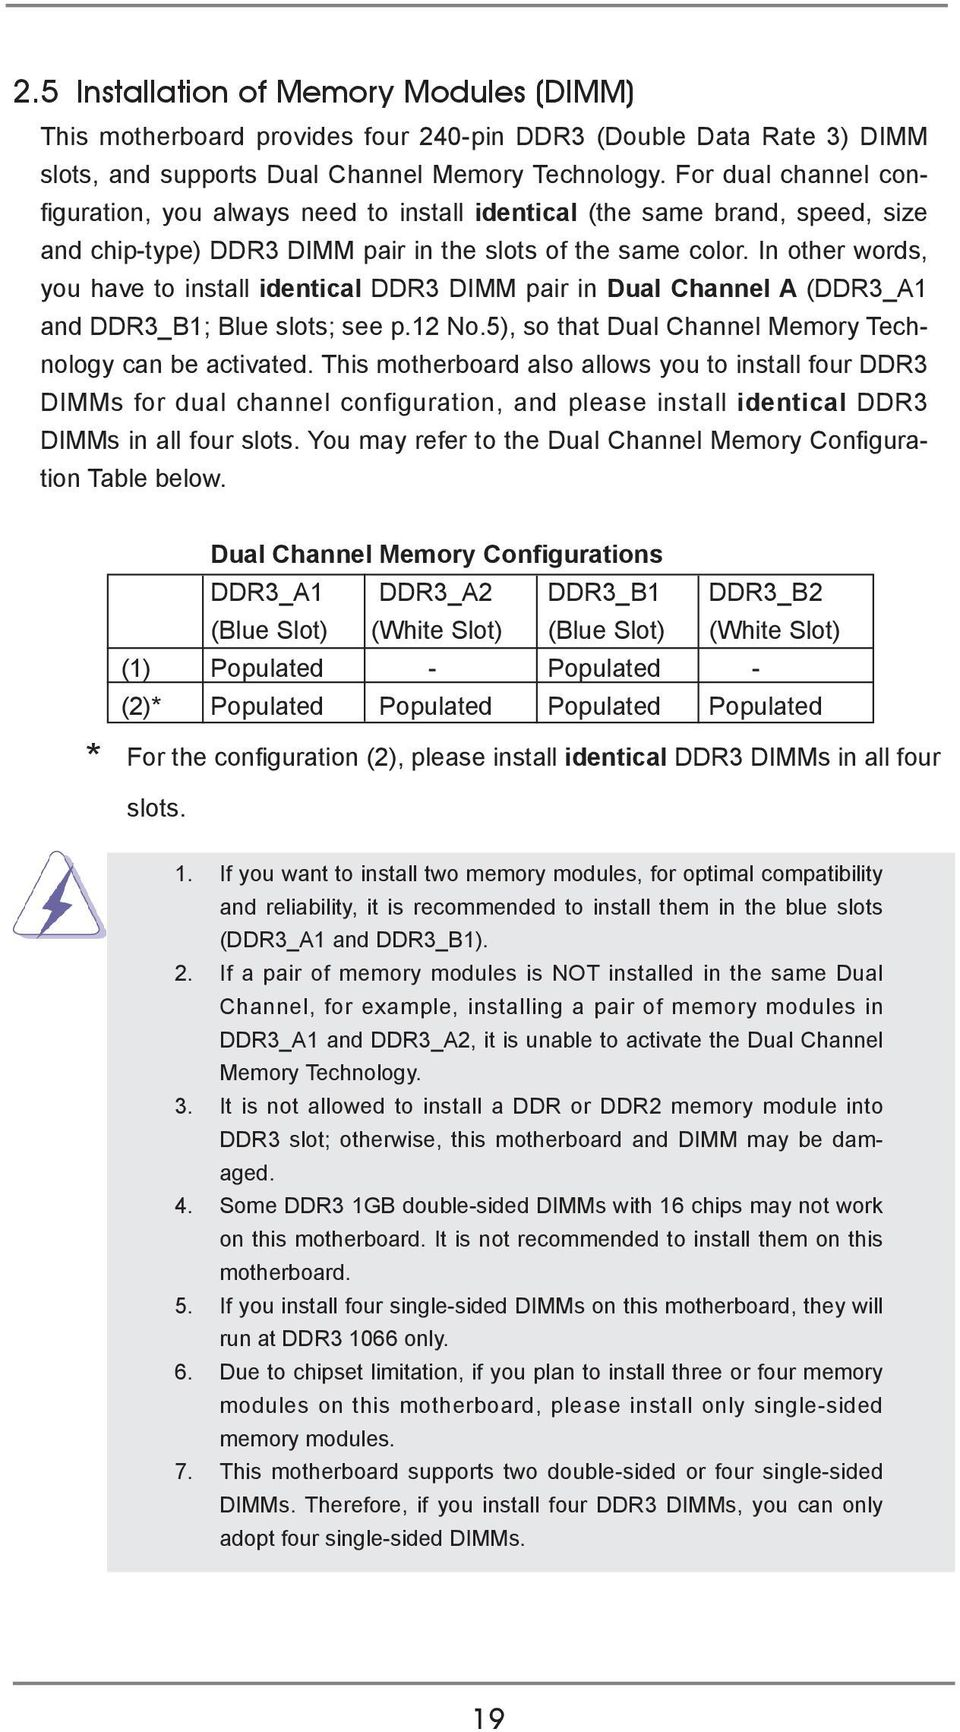 In other words, you have to install identical DDR3 DIMM pair in Dual Channel A (DDR3_A1 and DDR3_B1; Blue slots; see p.12 No.5), so that Dual Channel Memory Technology can be activated.